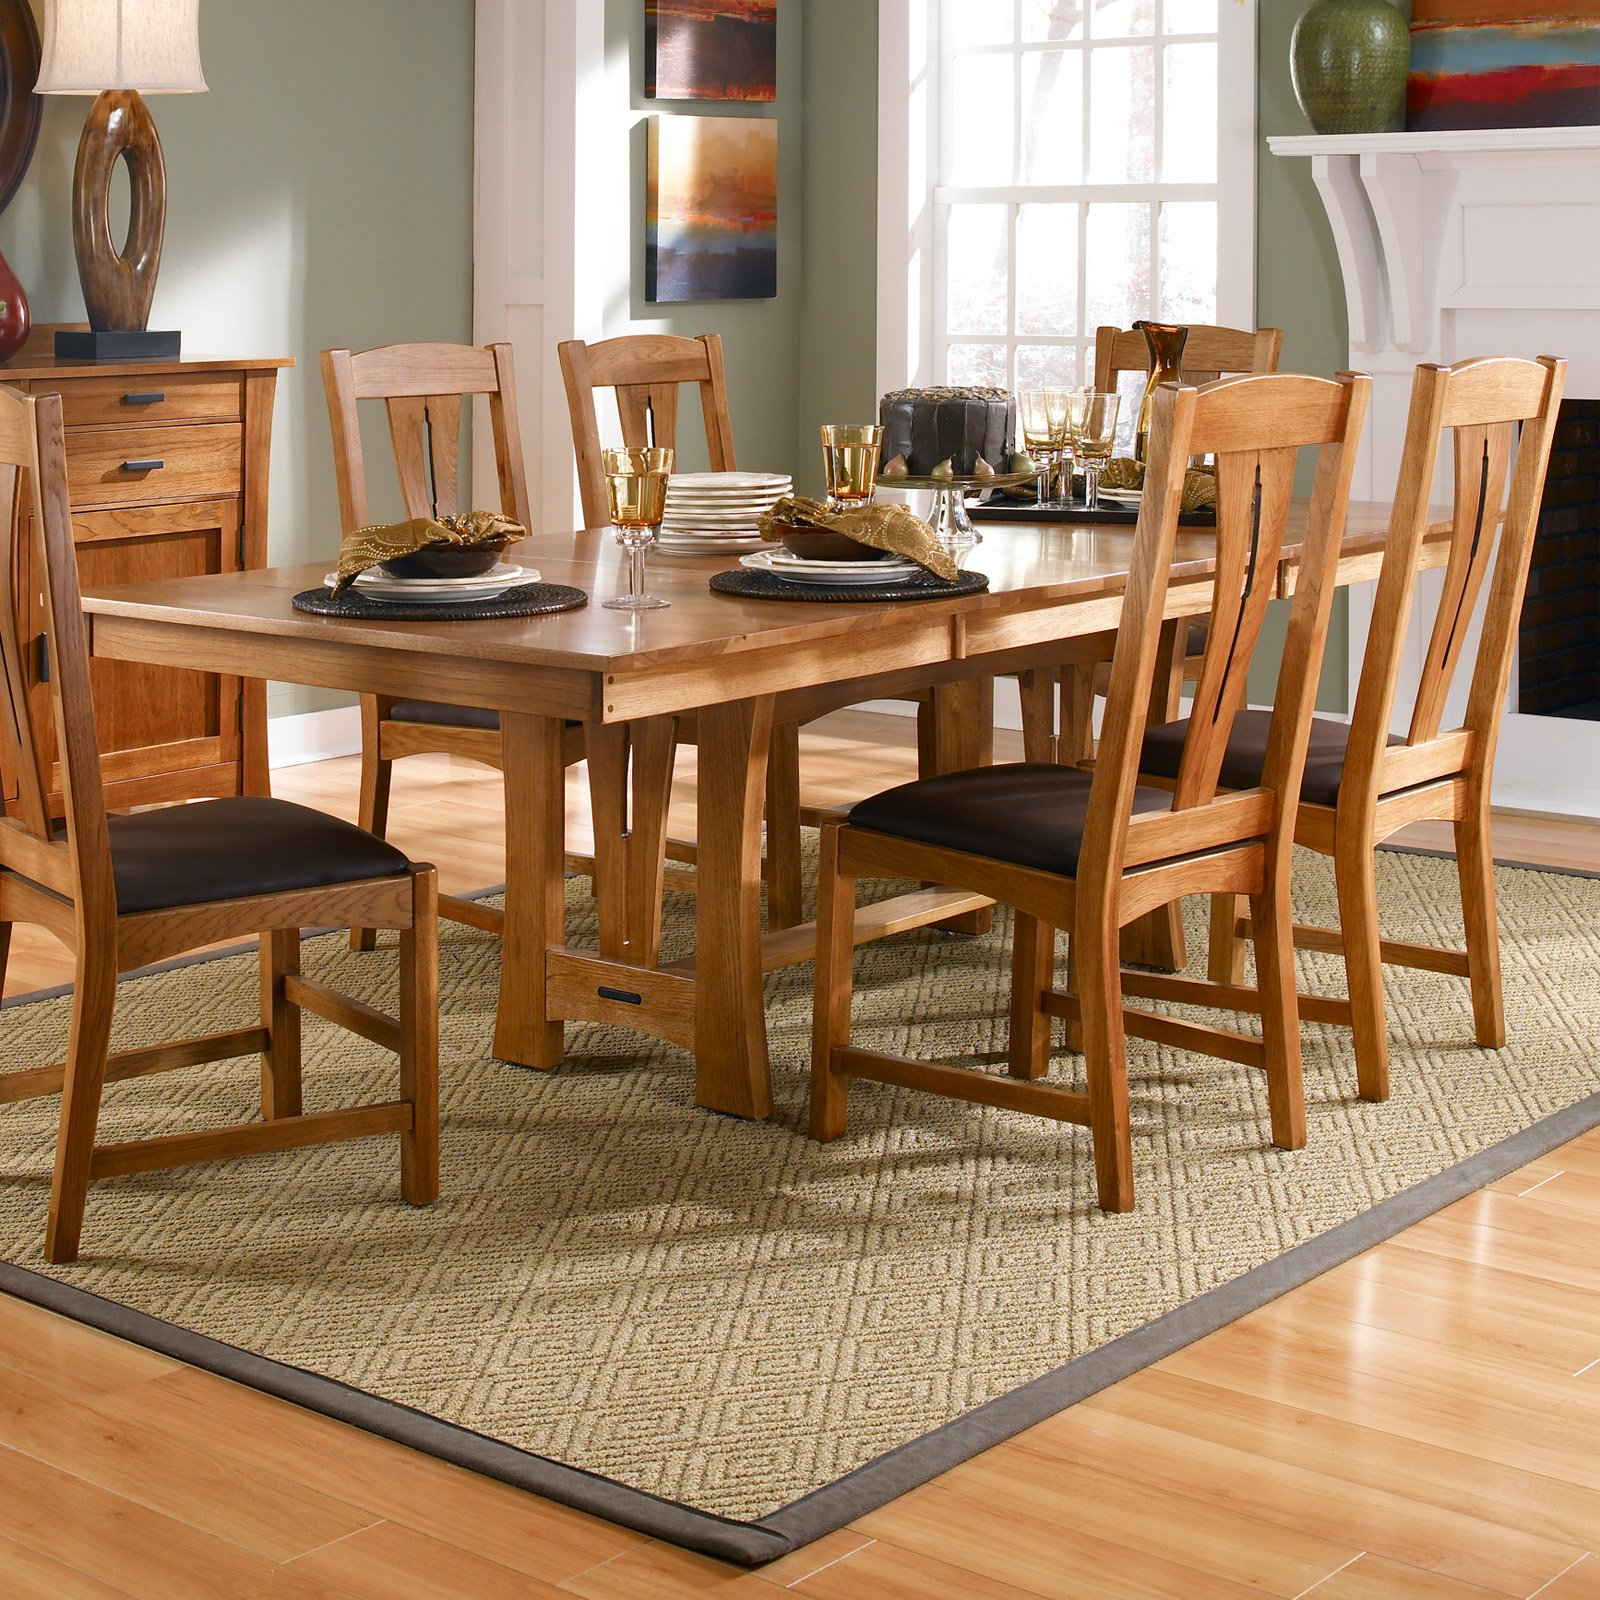 A-America Cattail Bungalow Trestle Dining Table